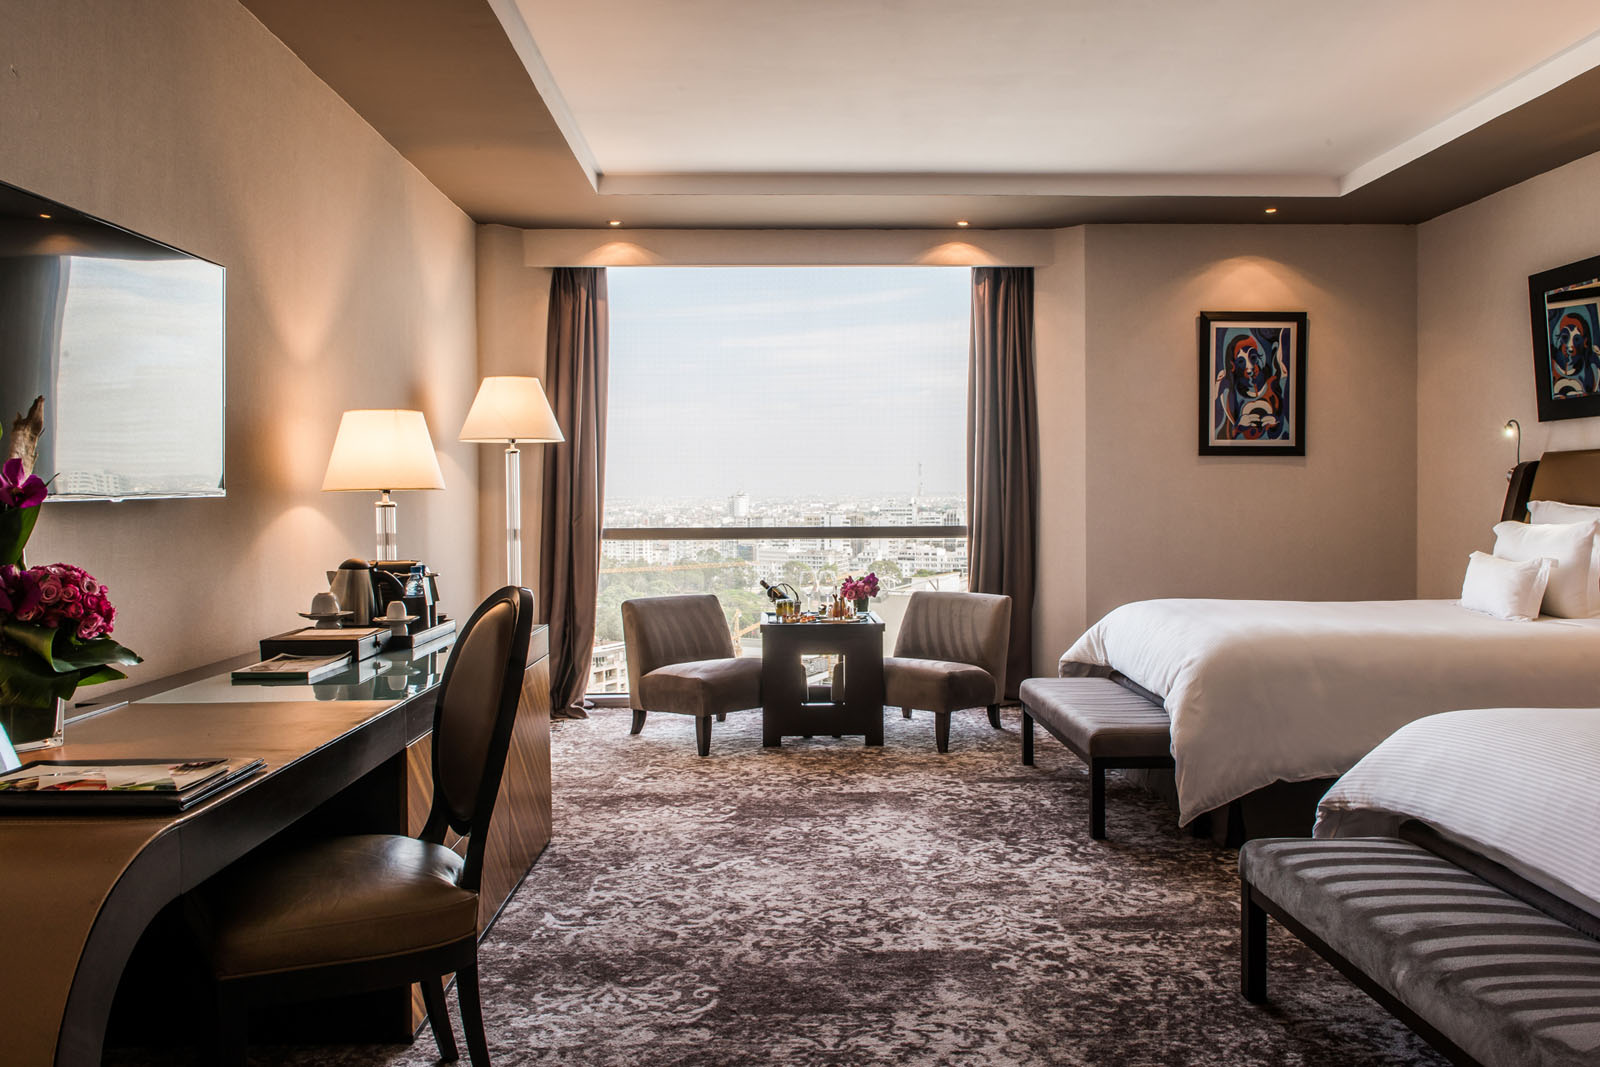 Deluxe Sky Twin Room at Kenzi Tower Hotel in central Casablanca,